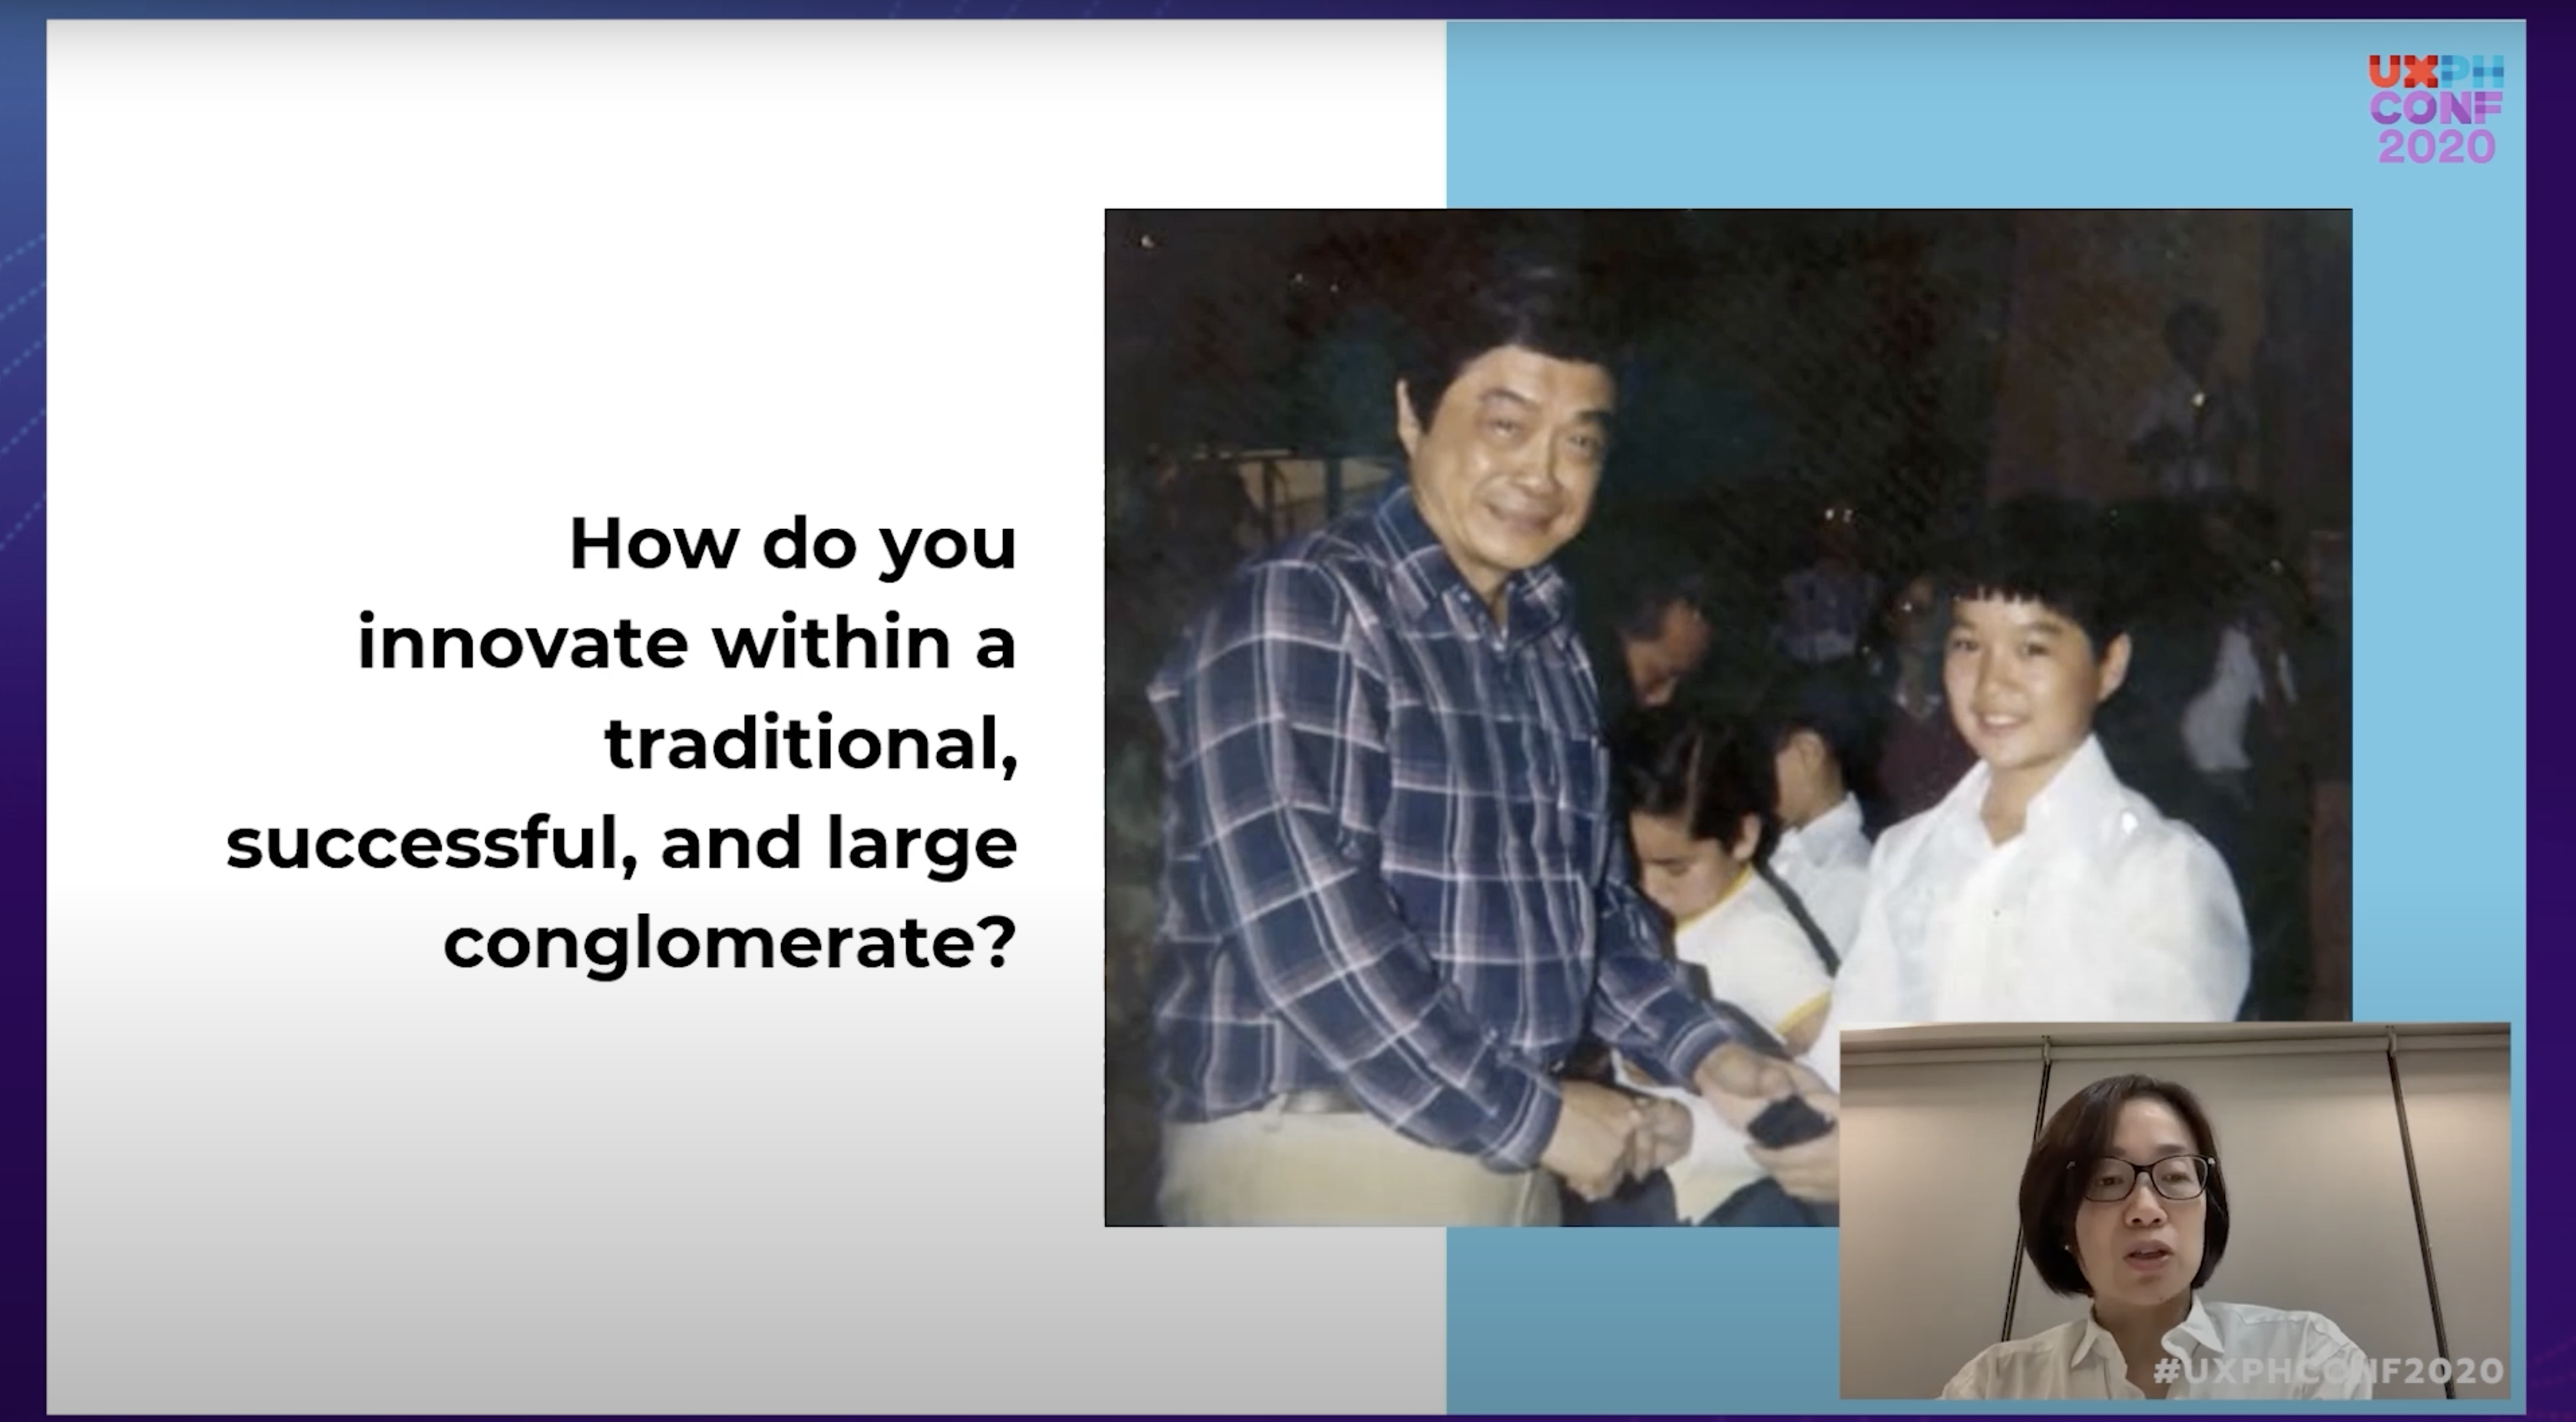 Lisa Gokongwei-Cheng is from JG Summit, one of the largest conglomerates in the Philippines.